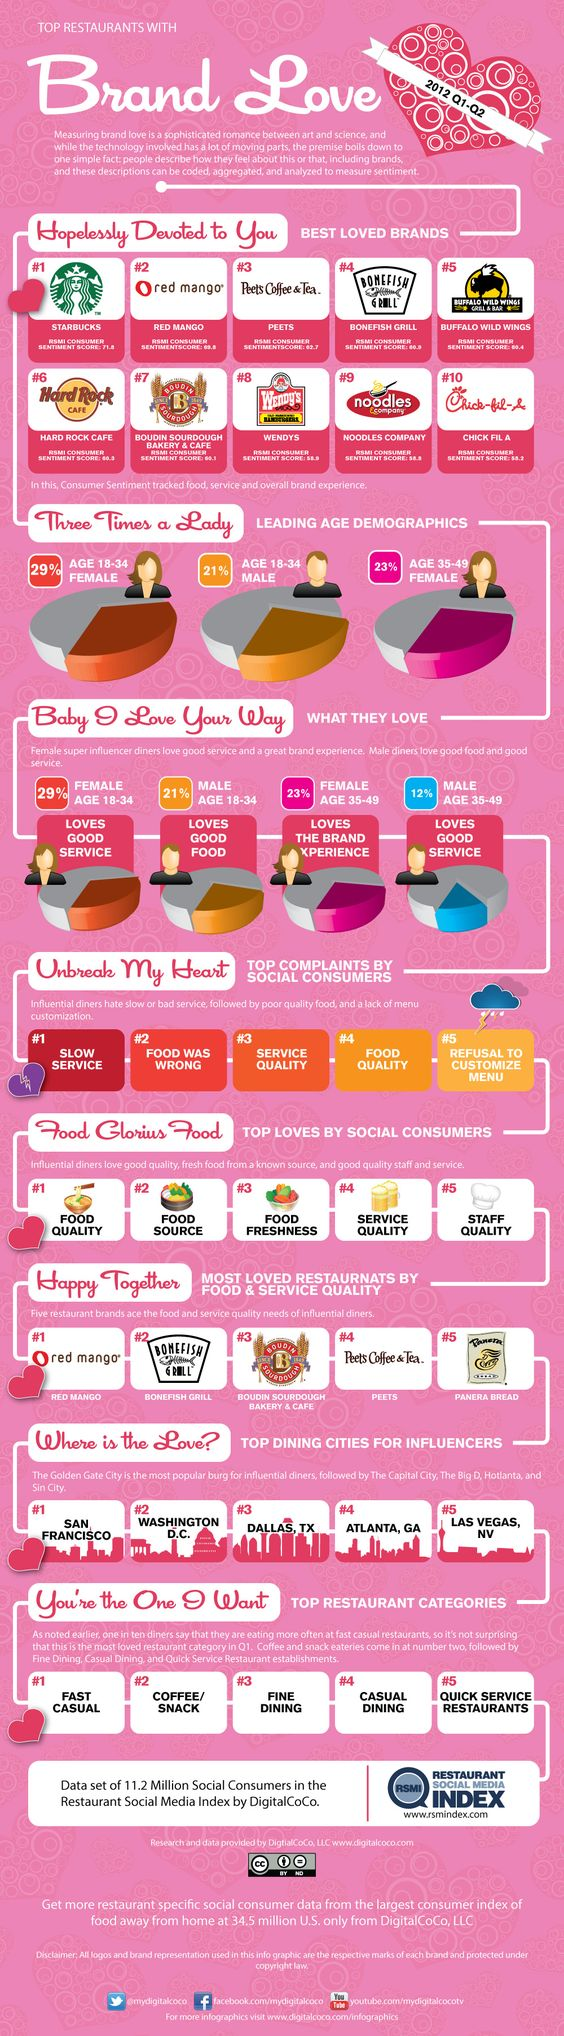 #Infographic: Top Restaurants with Brand Love